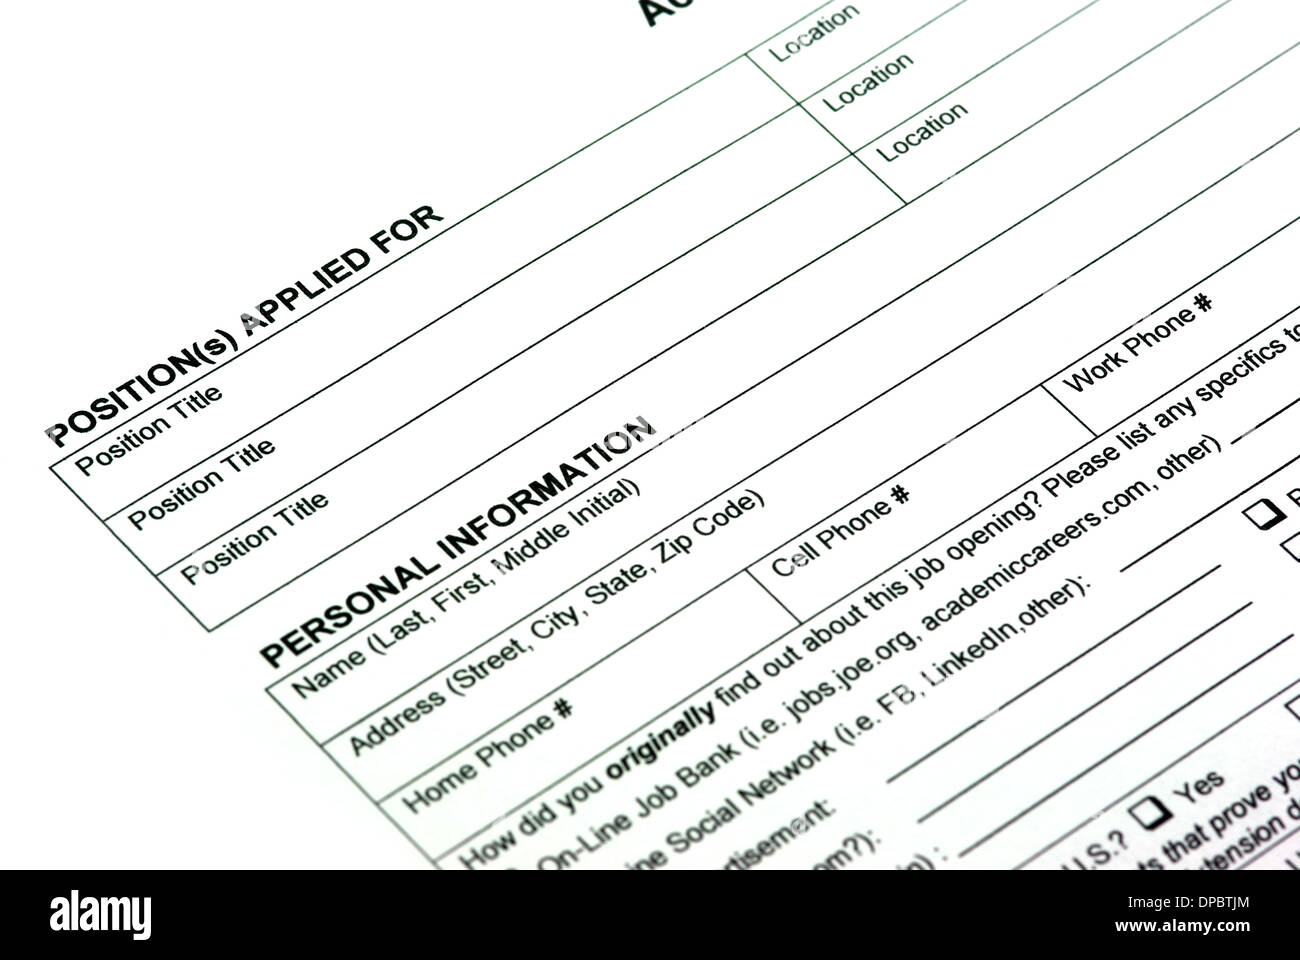 empty application form for a new job stock photo royalty empty application form for a new job